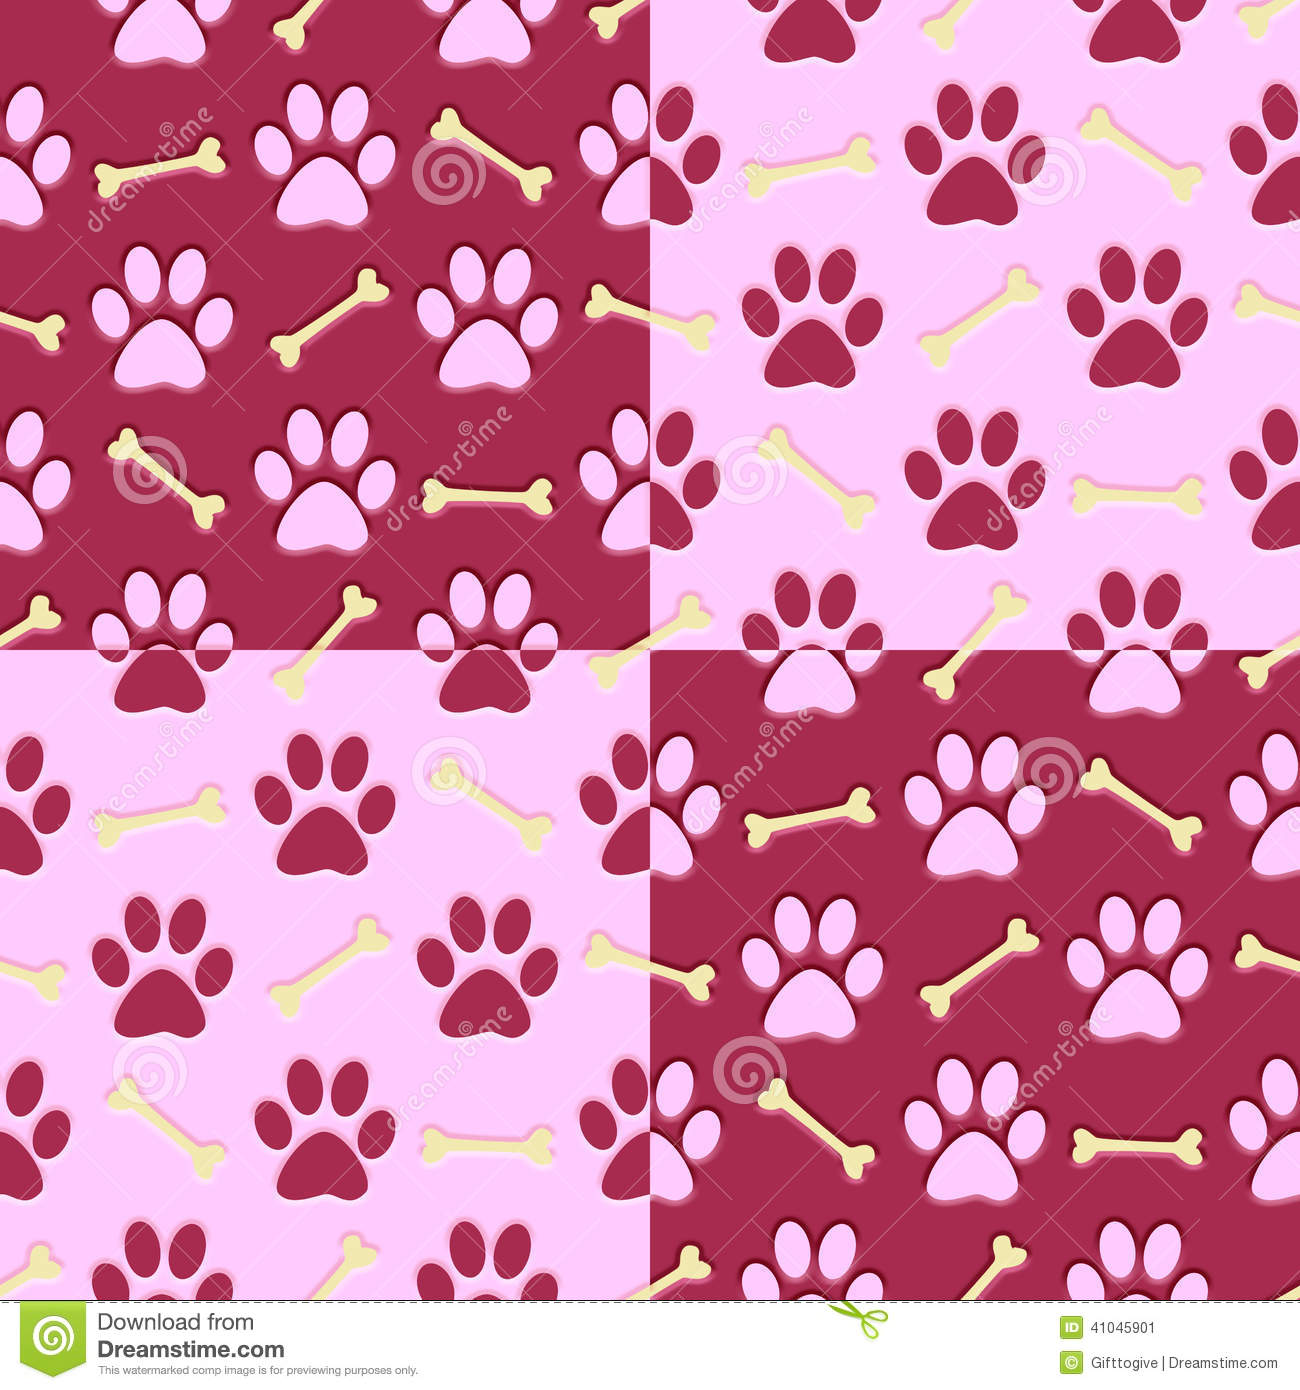 Cute Paw Print Wallpaper Pink Paw Print Background Stock Illustration Image 41045901